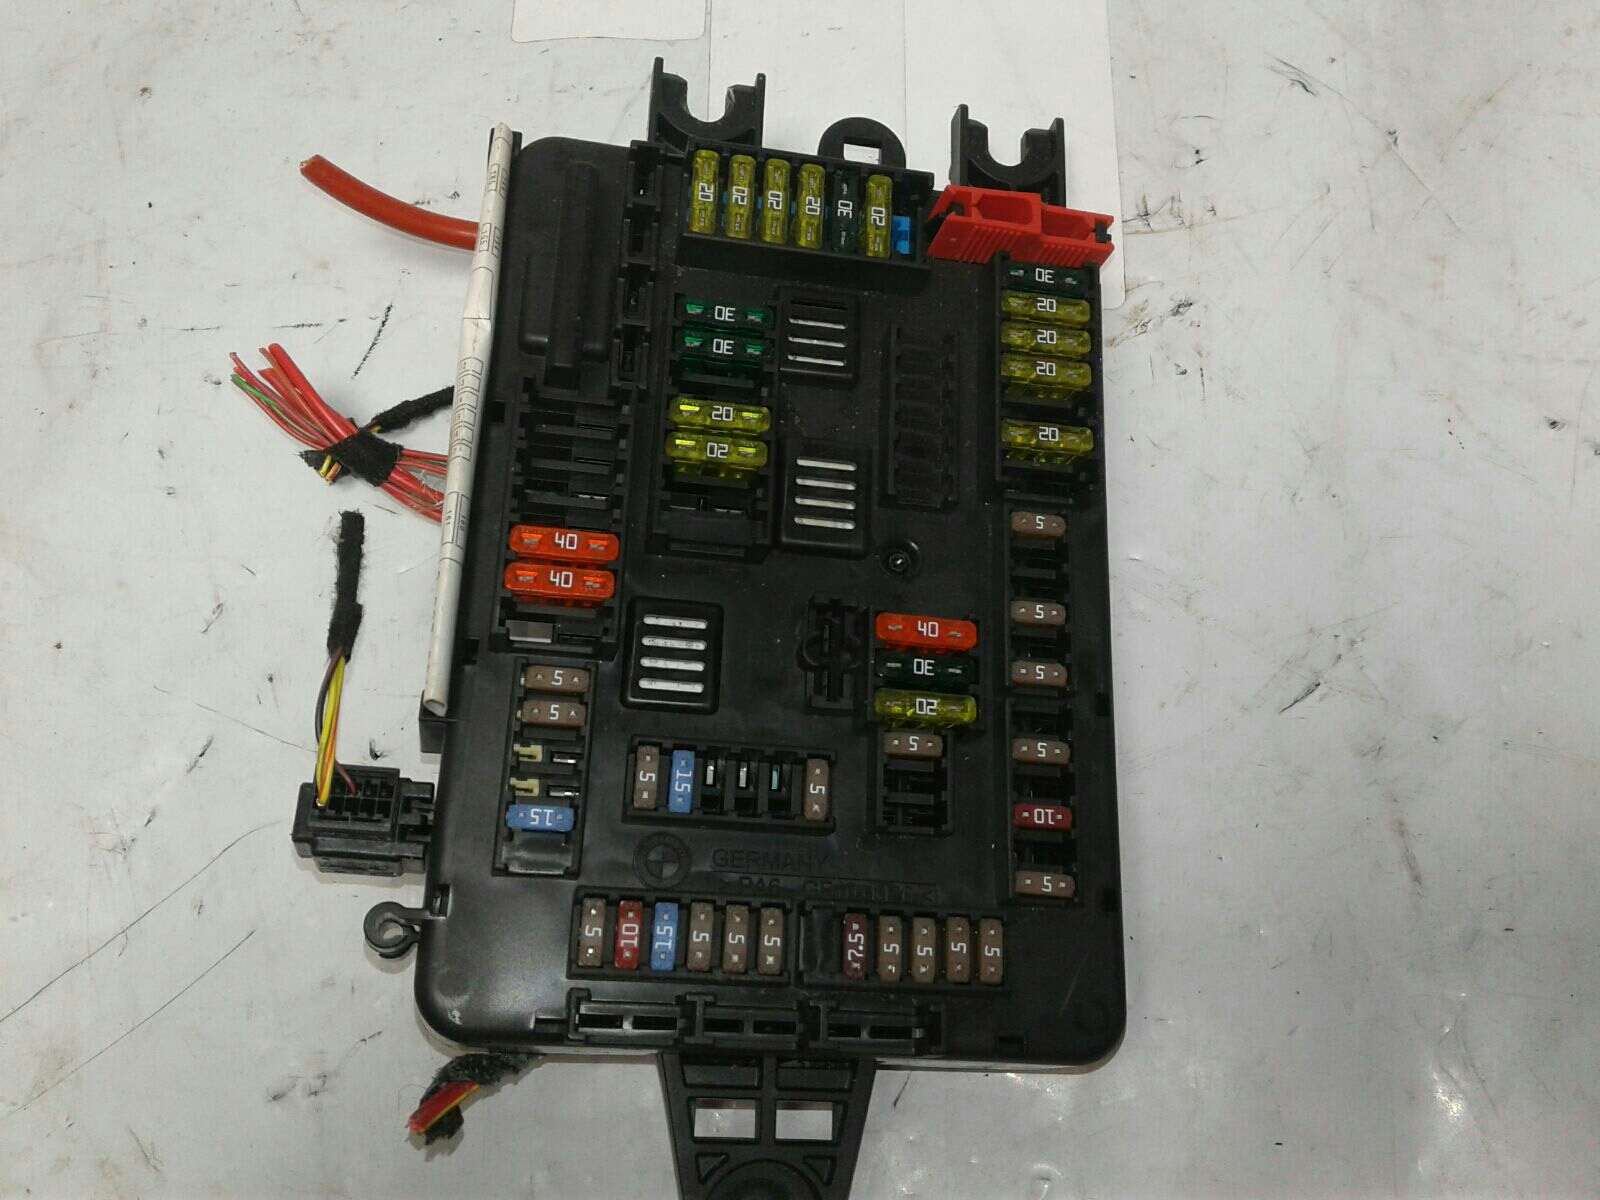 Bmw 3 Series 2012 To 2015 Fuse Box (diesel Automatic) For Sale 2002 BMW  540I Fuse Panel Bmw Fuse Box S 3